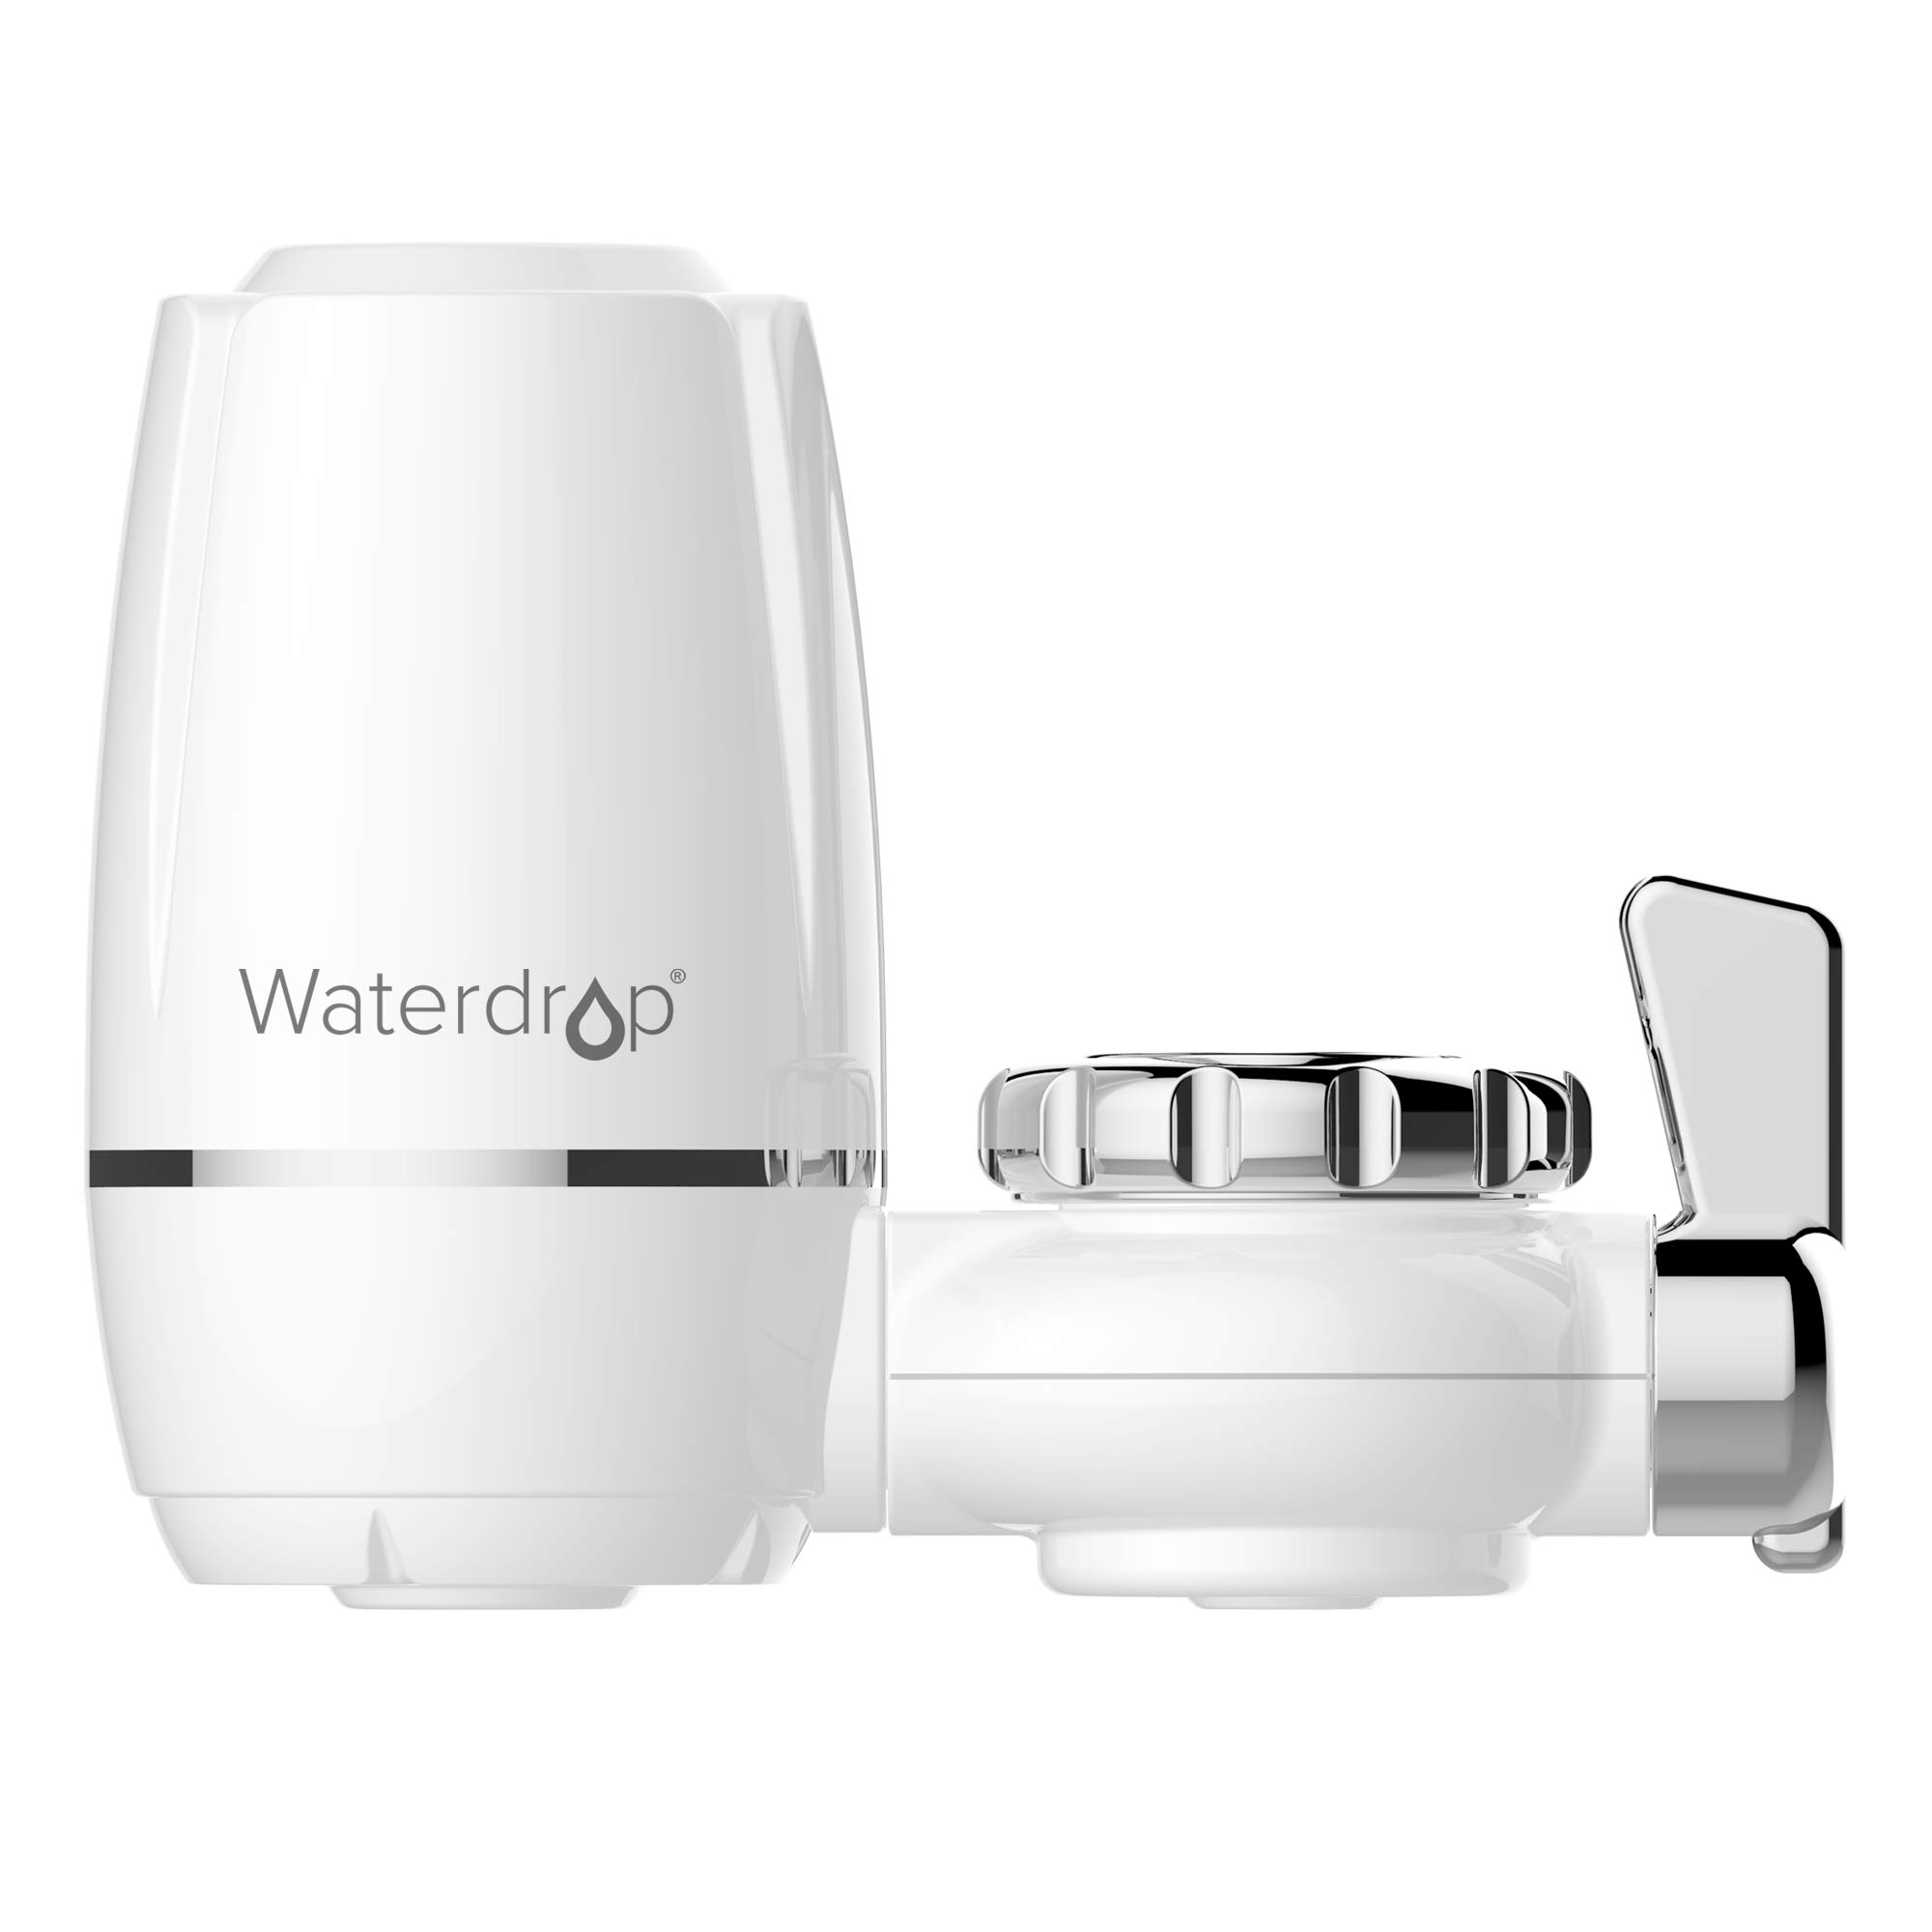 Waterdrop 320-Gallon Long-Lasting Water Faucet Filtration System, Faucet Water Filter, Removes 93% Chlorine, Removes Harmful Contaminants Metals & Sediments - Fits Standard Faucets (1 Filter Included) by Waterdrop